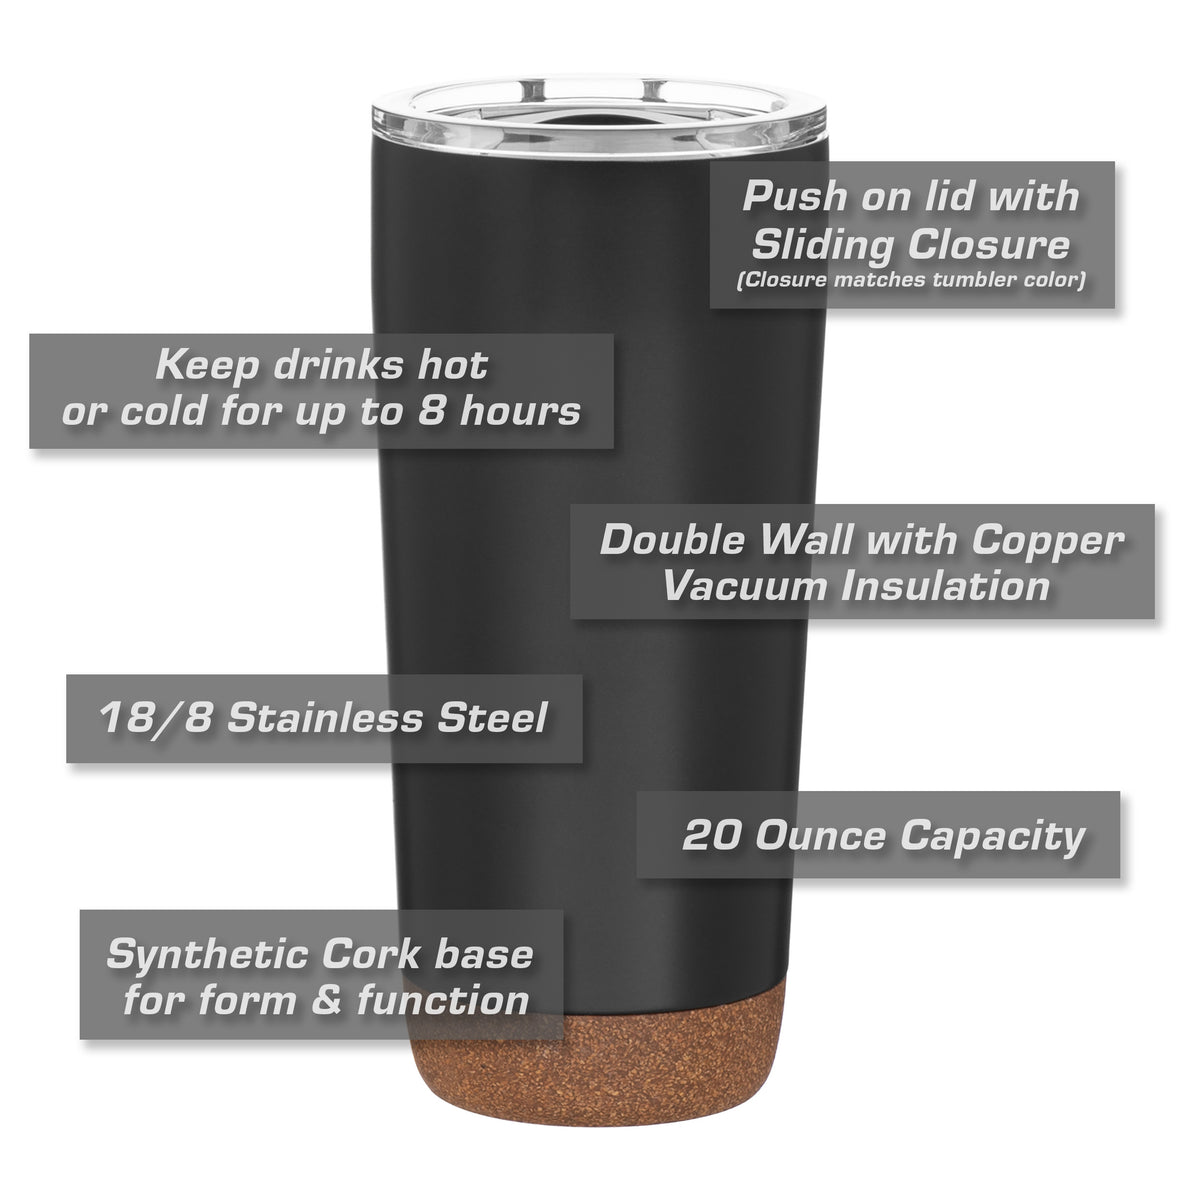 Plymouth Barracuda Cuda 1970 Insulated Stainless Steel Coffee Tumbler - 20 oz